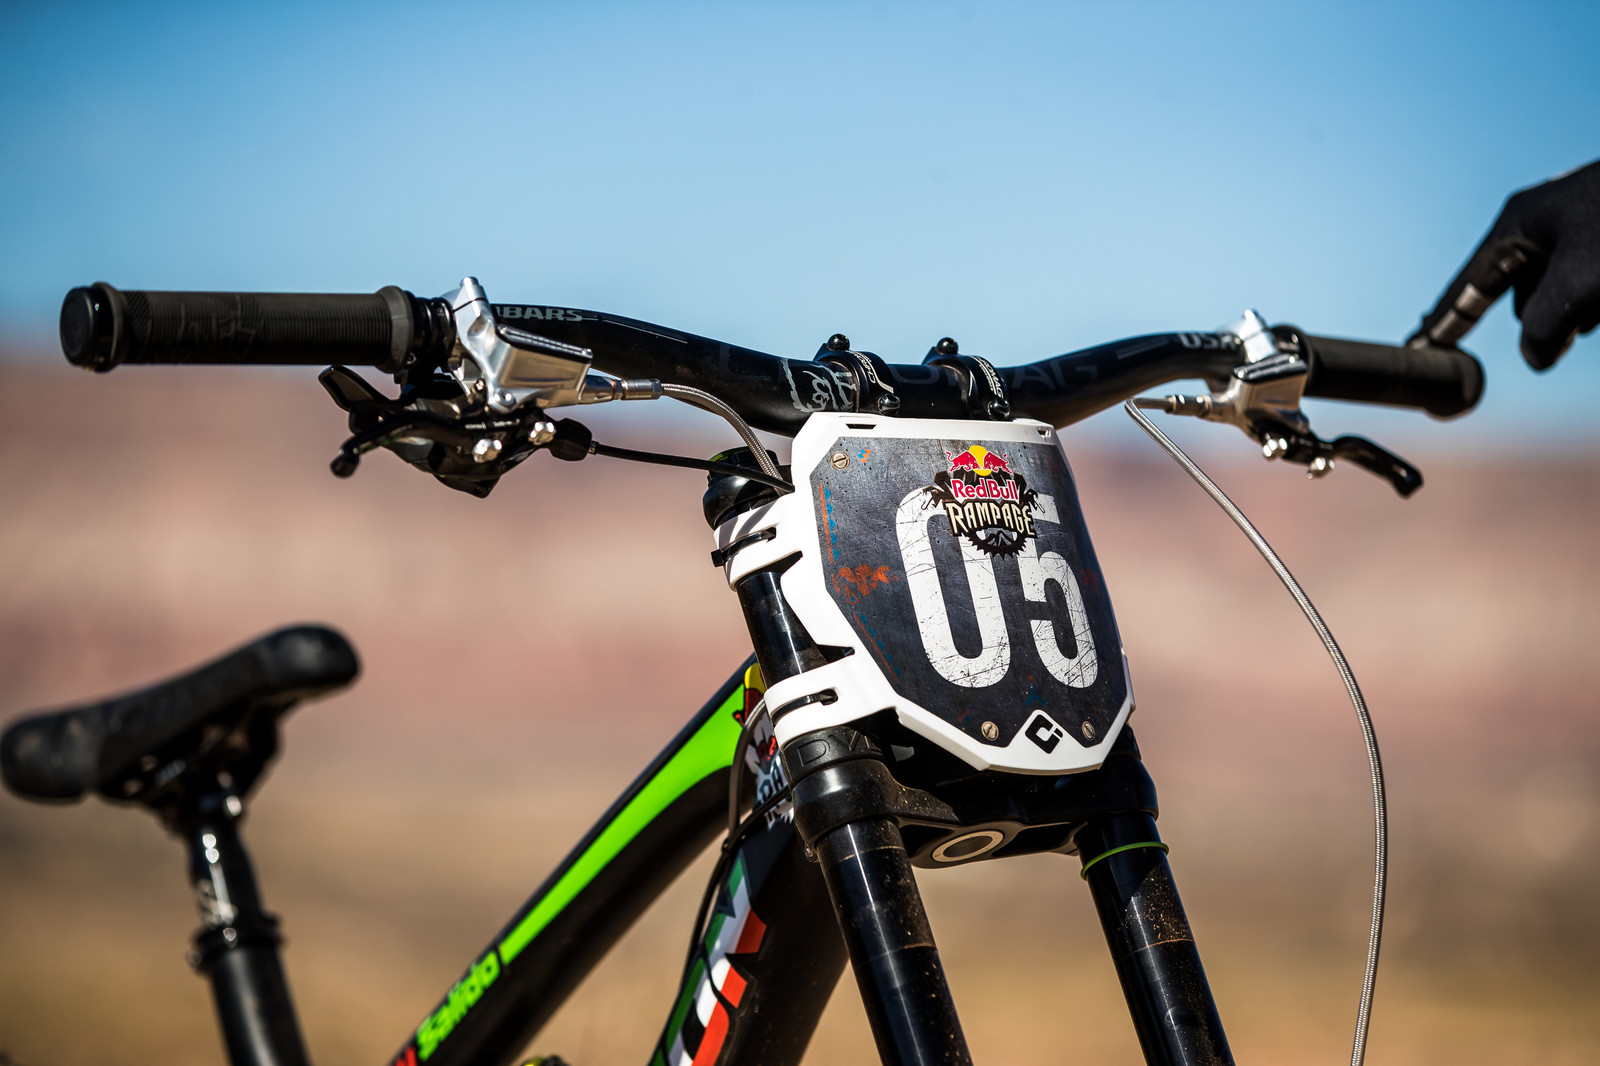 Number Plate on Juan Diego Salido's Transition TR11 at Rampage 2019 - RAMPAGE BIKE - Juan Diego Salido's Transition TR11 - Mountain Biking Pictures - Vital MTB